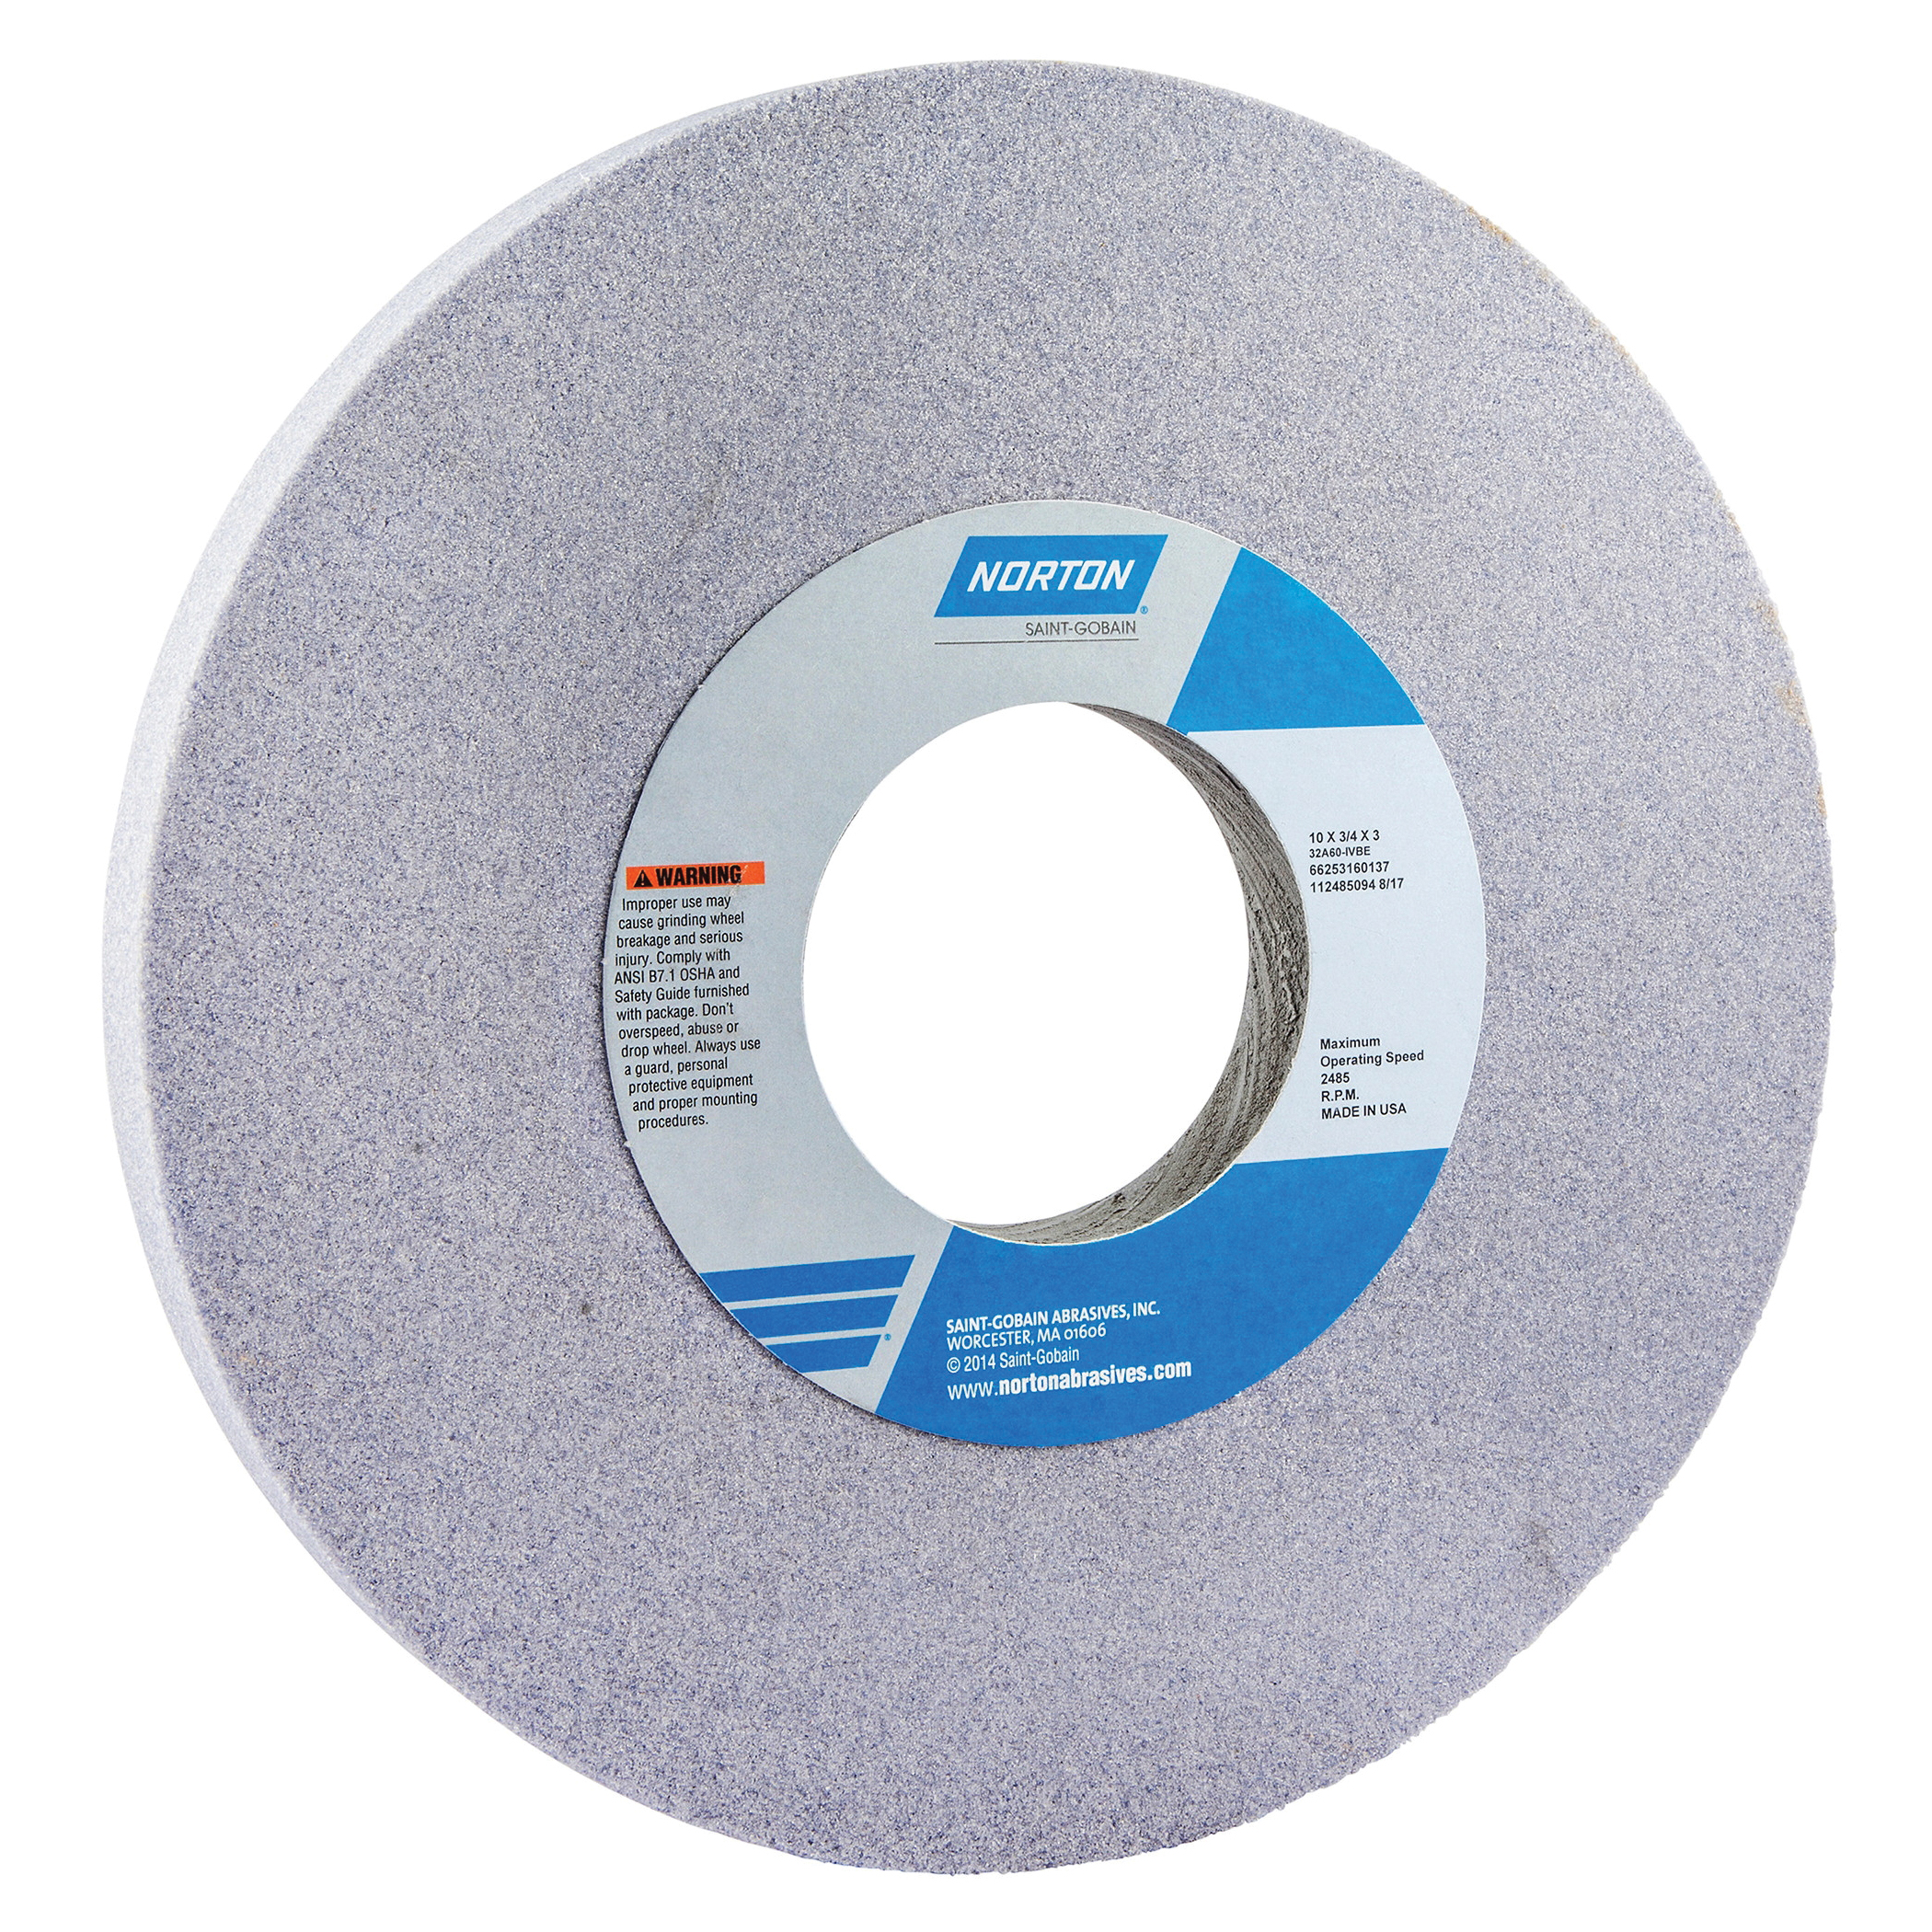 Norton® 66253160137 32A Straight Toolroom Wheel, 10 in Dia x 3/4 in THK, 3 in Center Hole, 60 Grit, Aluminum Oxide Abrasive